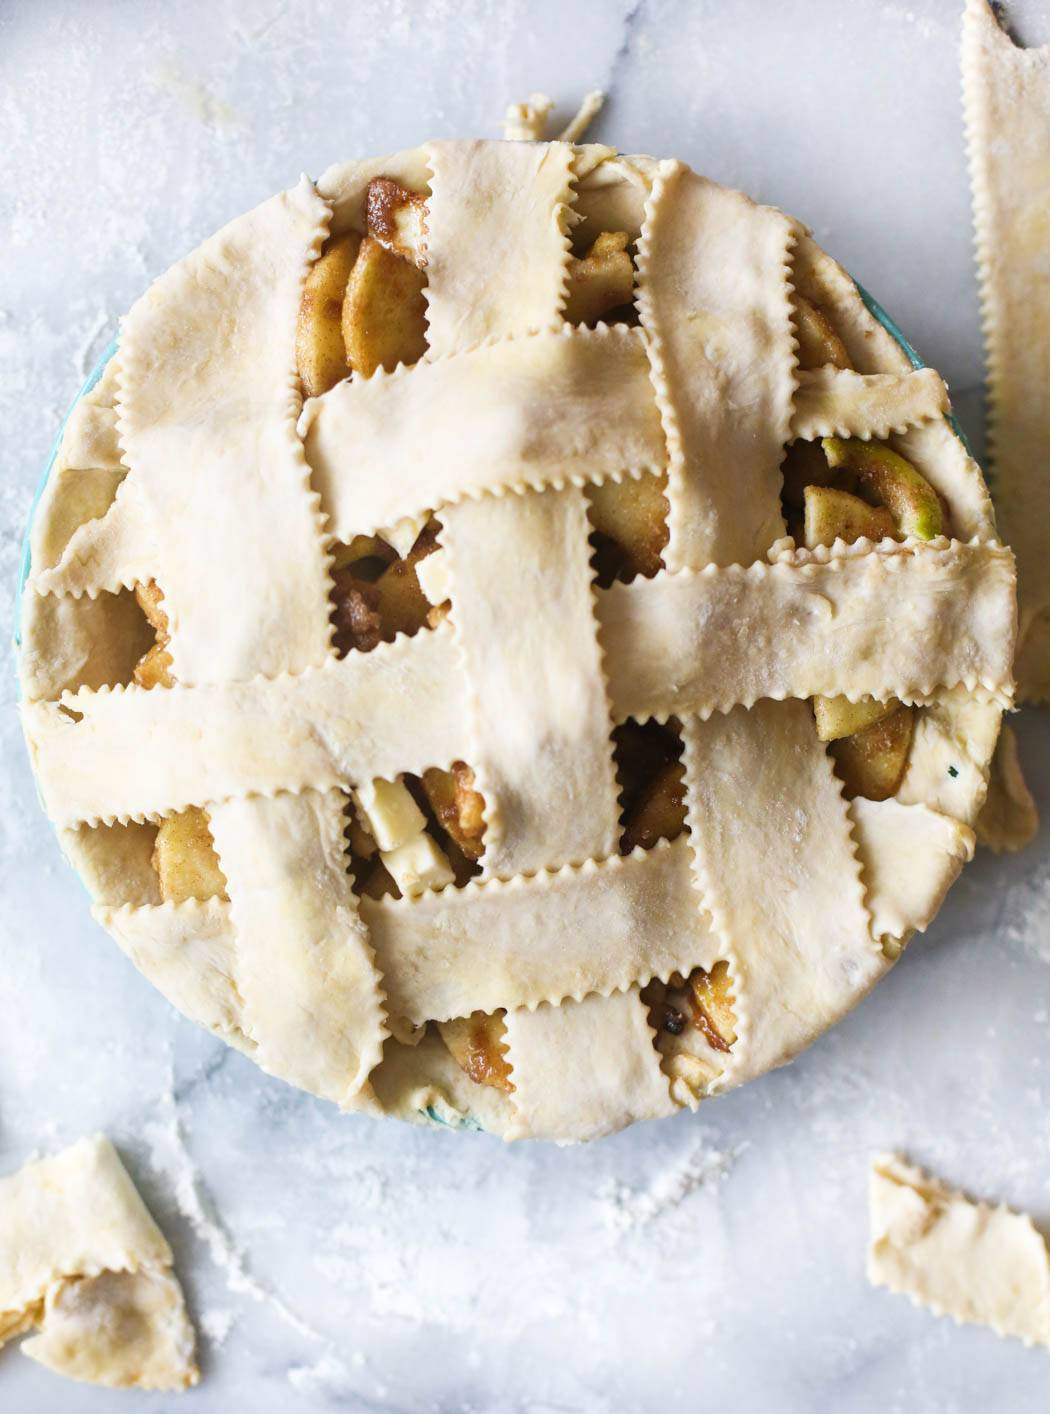 apple pie with lattice top crust before baking